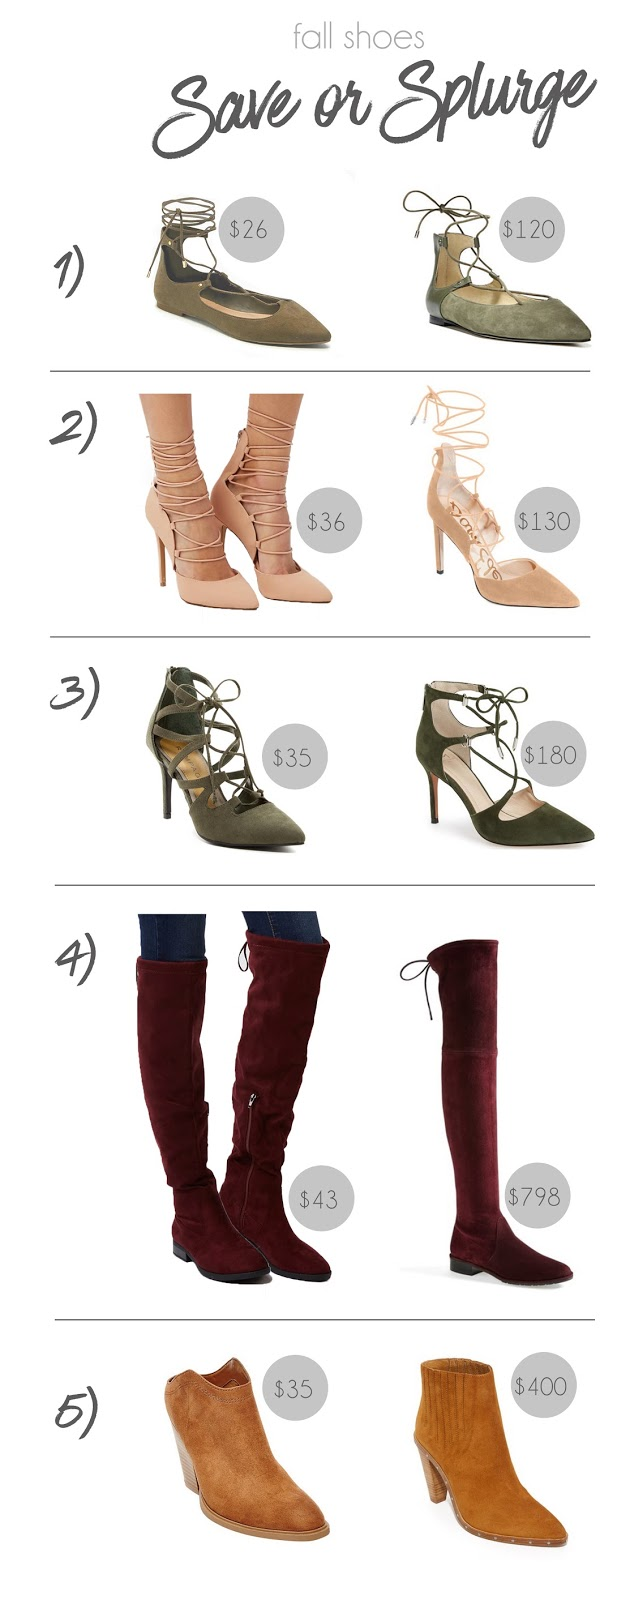 top-shoes-for-fall-2016-dupes-steals-designer-knockoffs-blogger